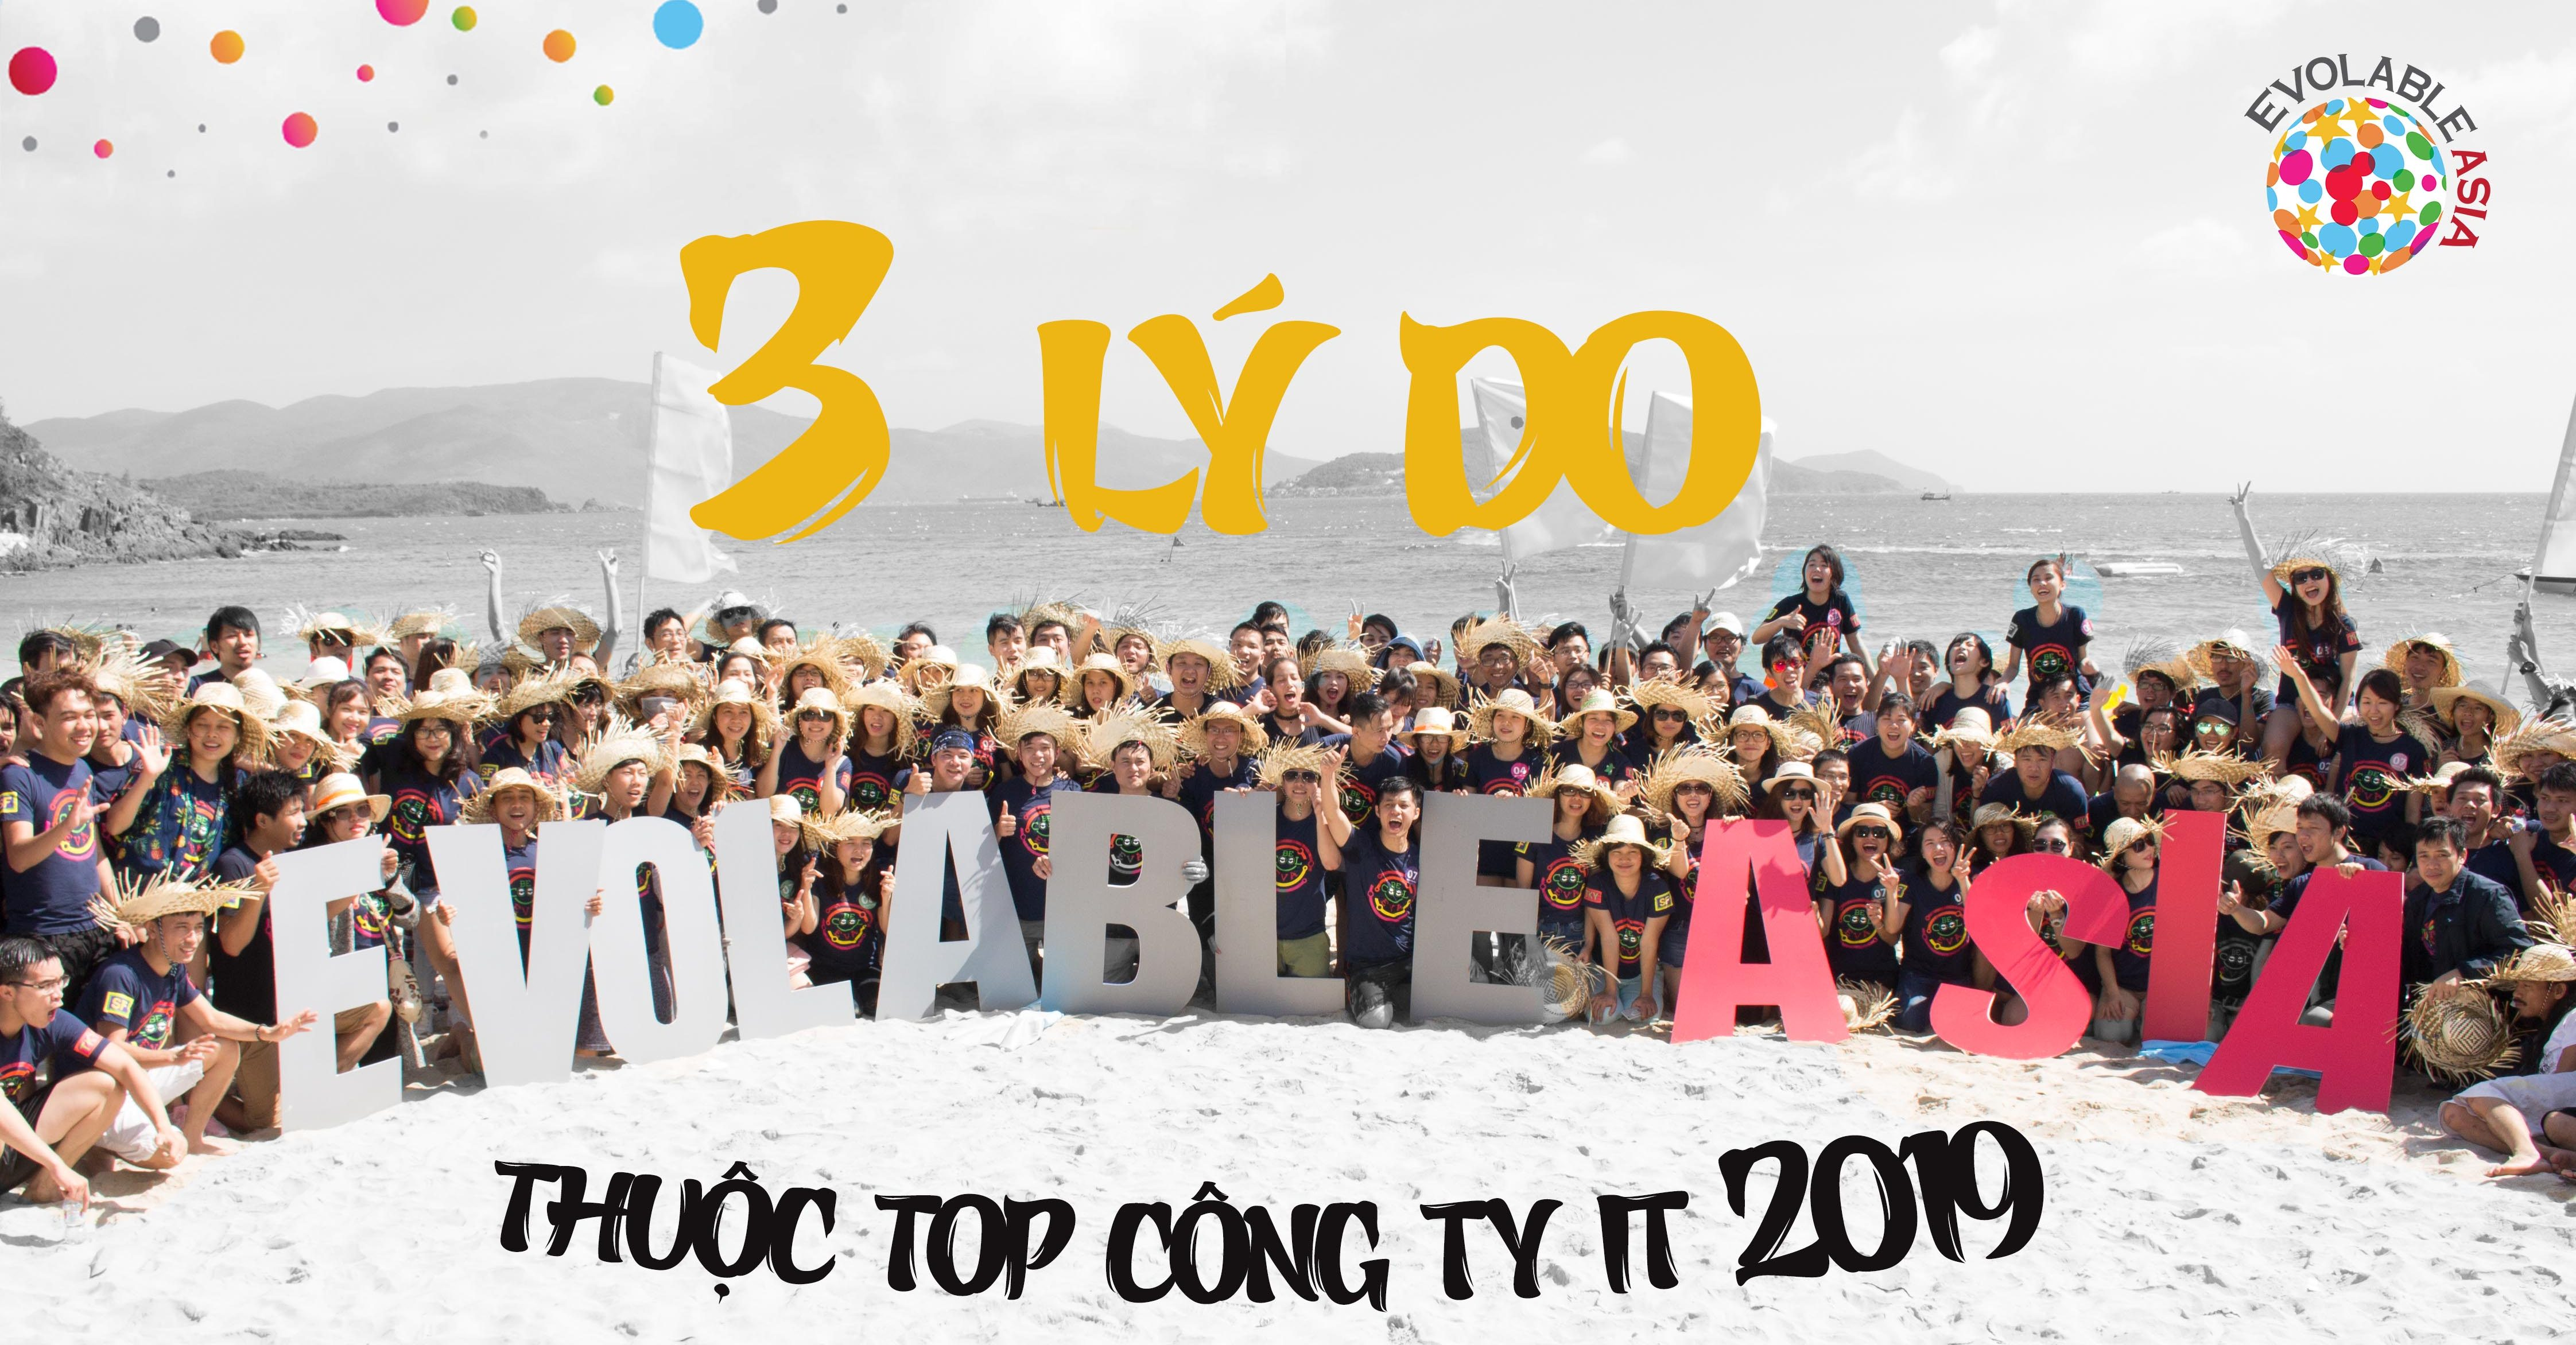 Top công ty IT 2019: 3 lý do EVOLABLE ASIA nằm trong Top